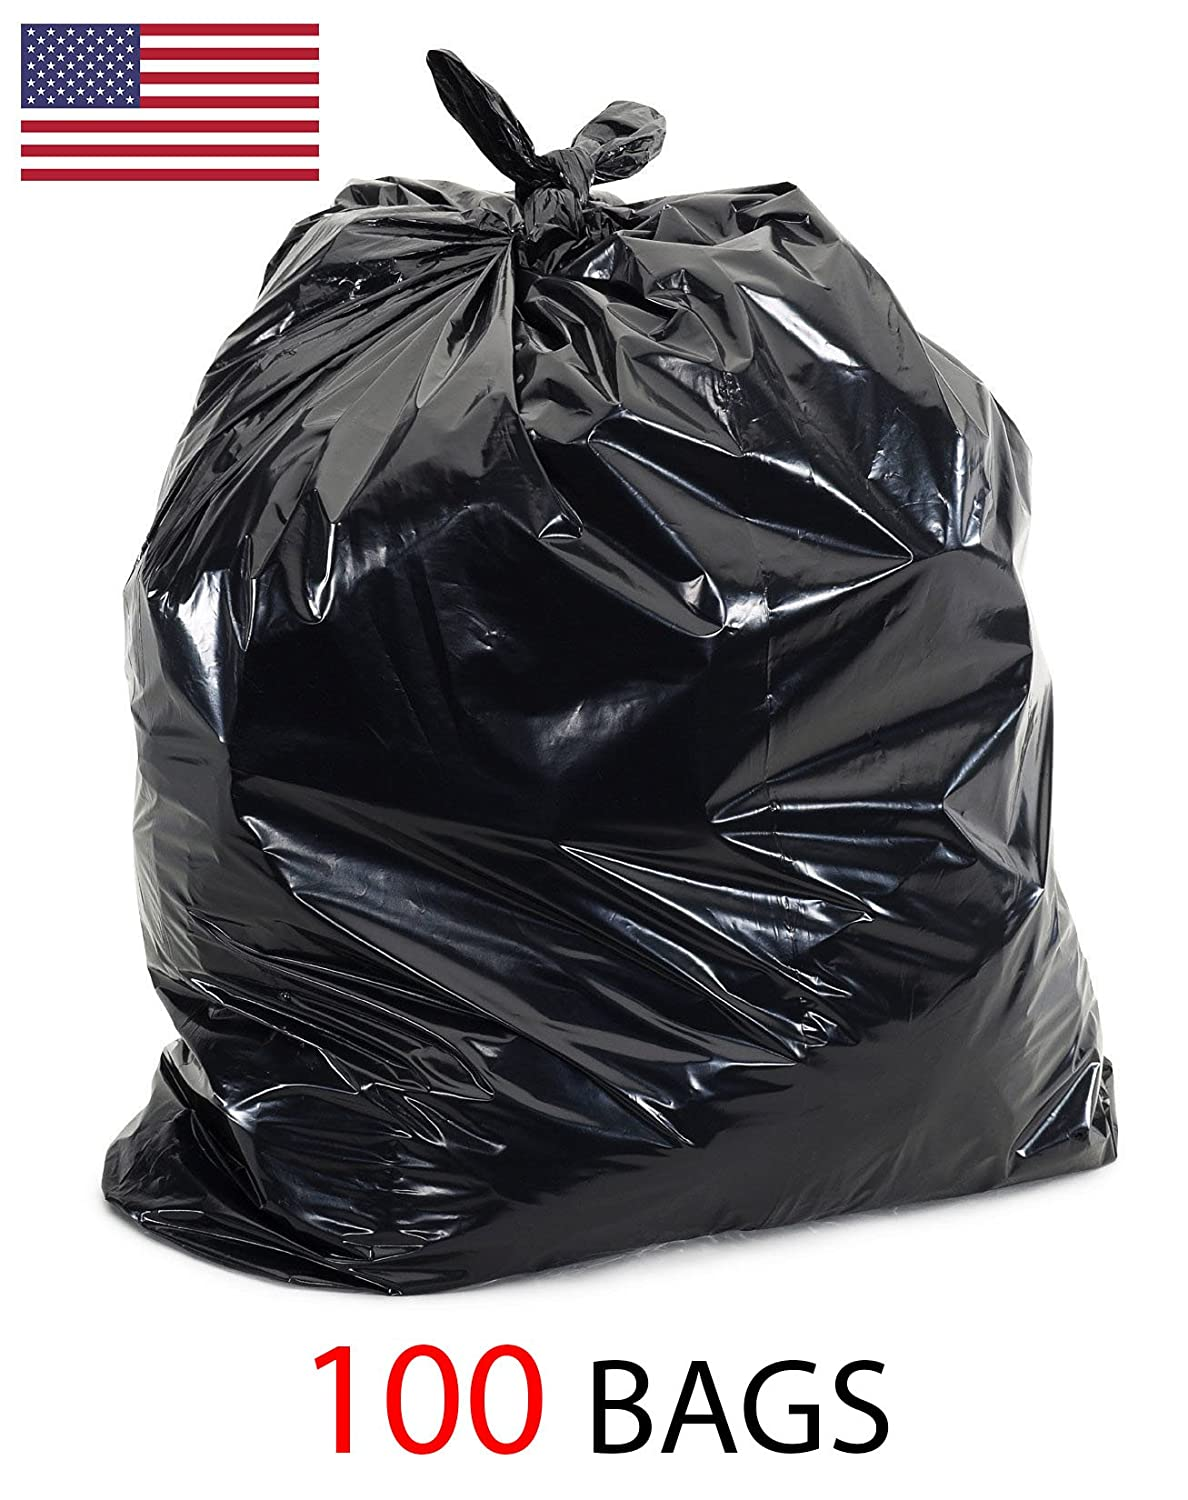 39 Gallon 1.5 Mil Strong Trash Bags, Lawn Leaf Bags, Heavy Duty Trash Bag, Contractor Garbage Bag (100)